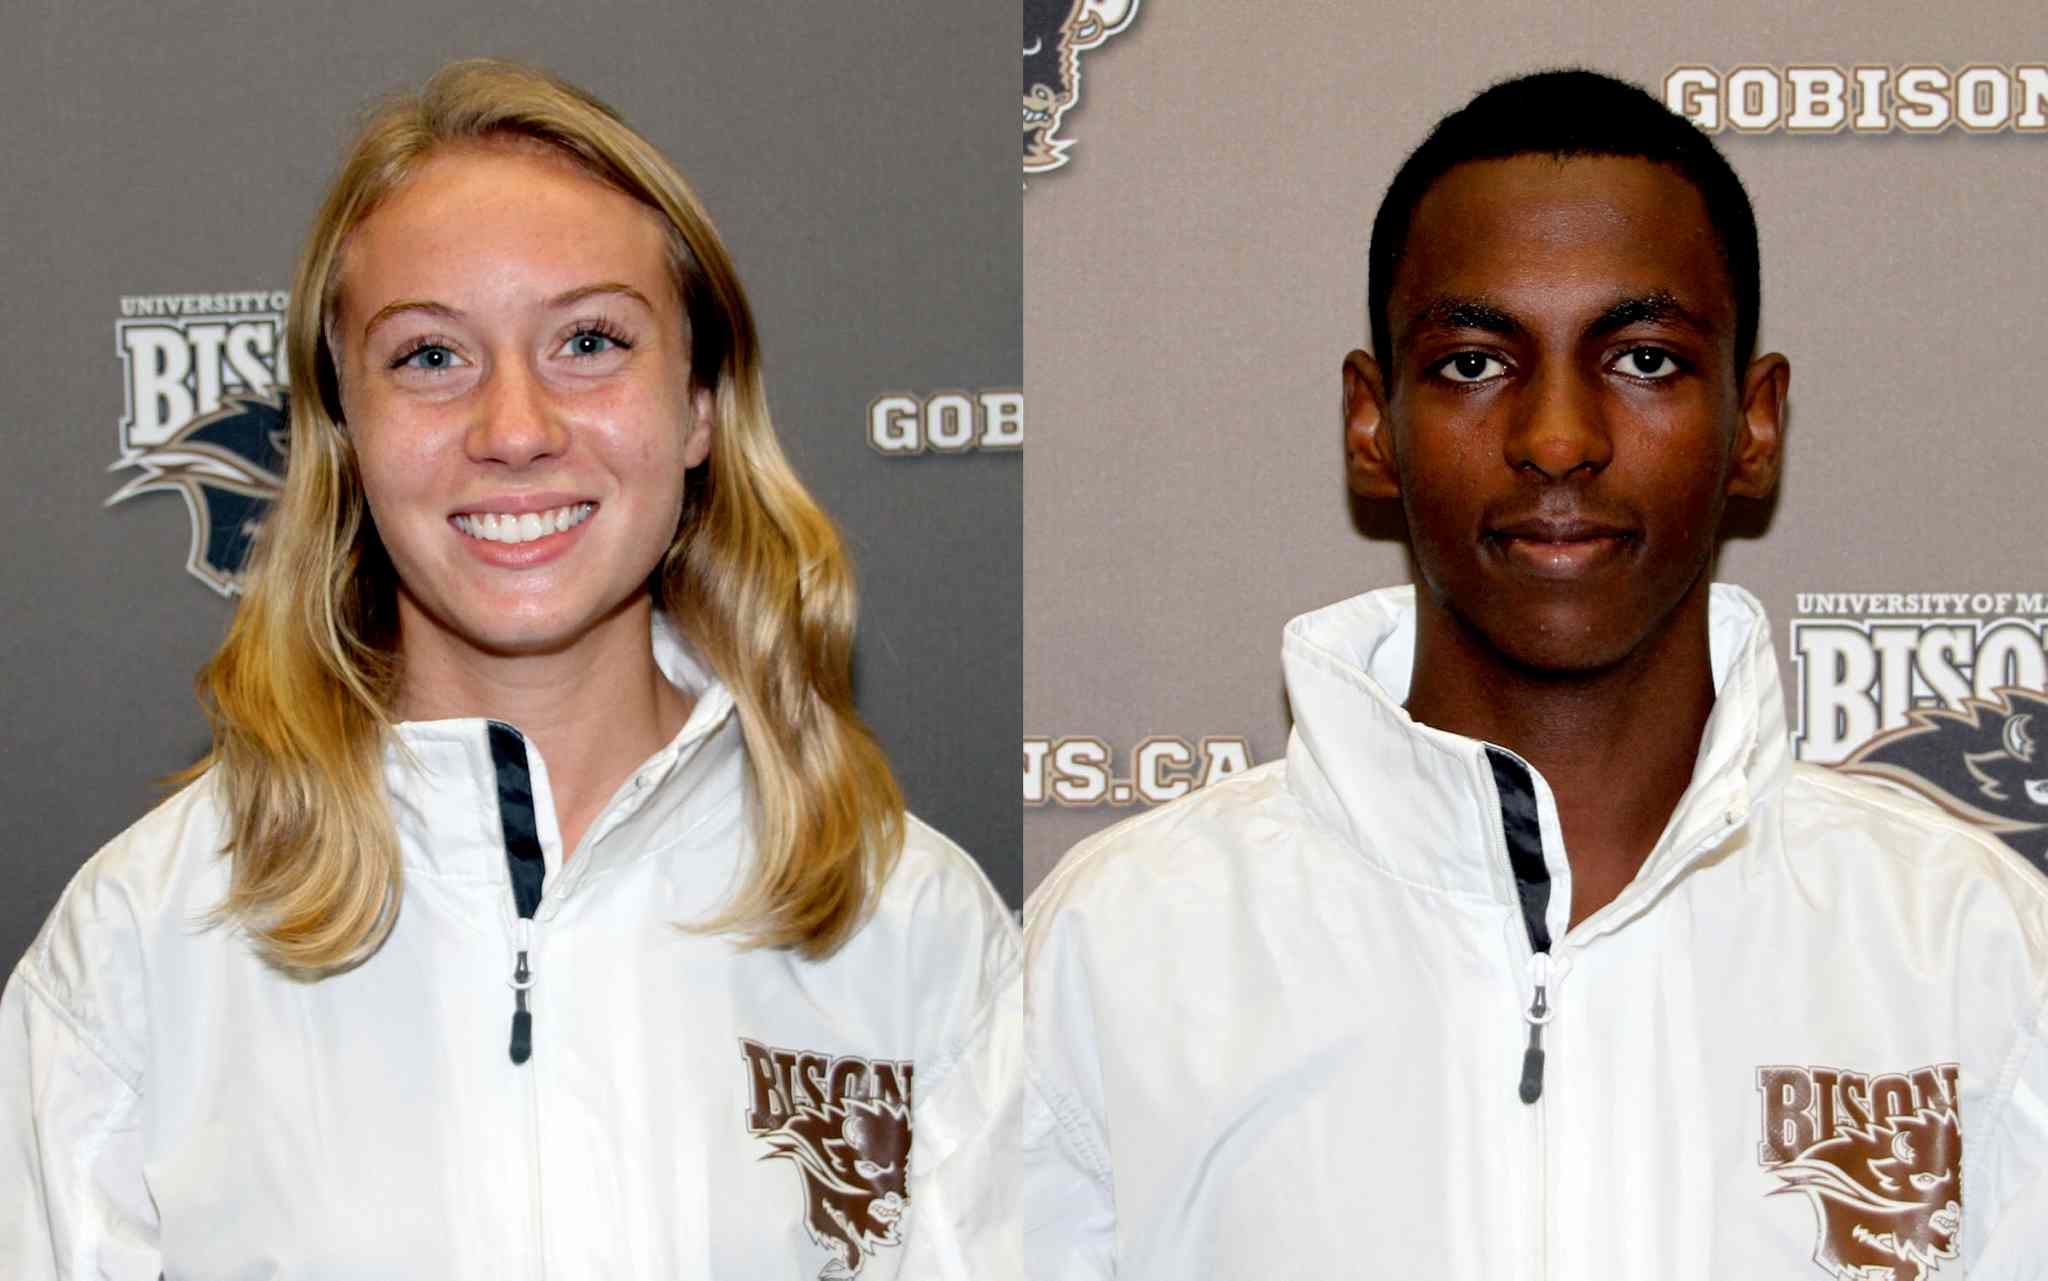 Rebekah Sass (left) and Abduselam Yussuf are the University of Manitoba's Athletes of the Week for the week ending Nov. 10.